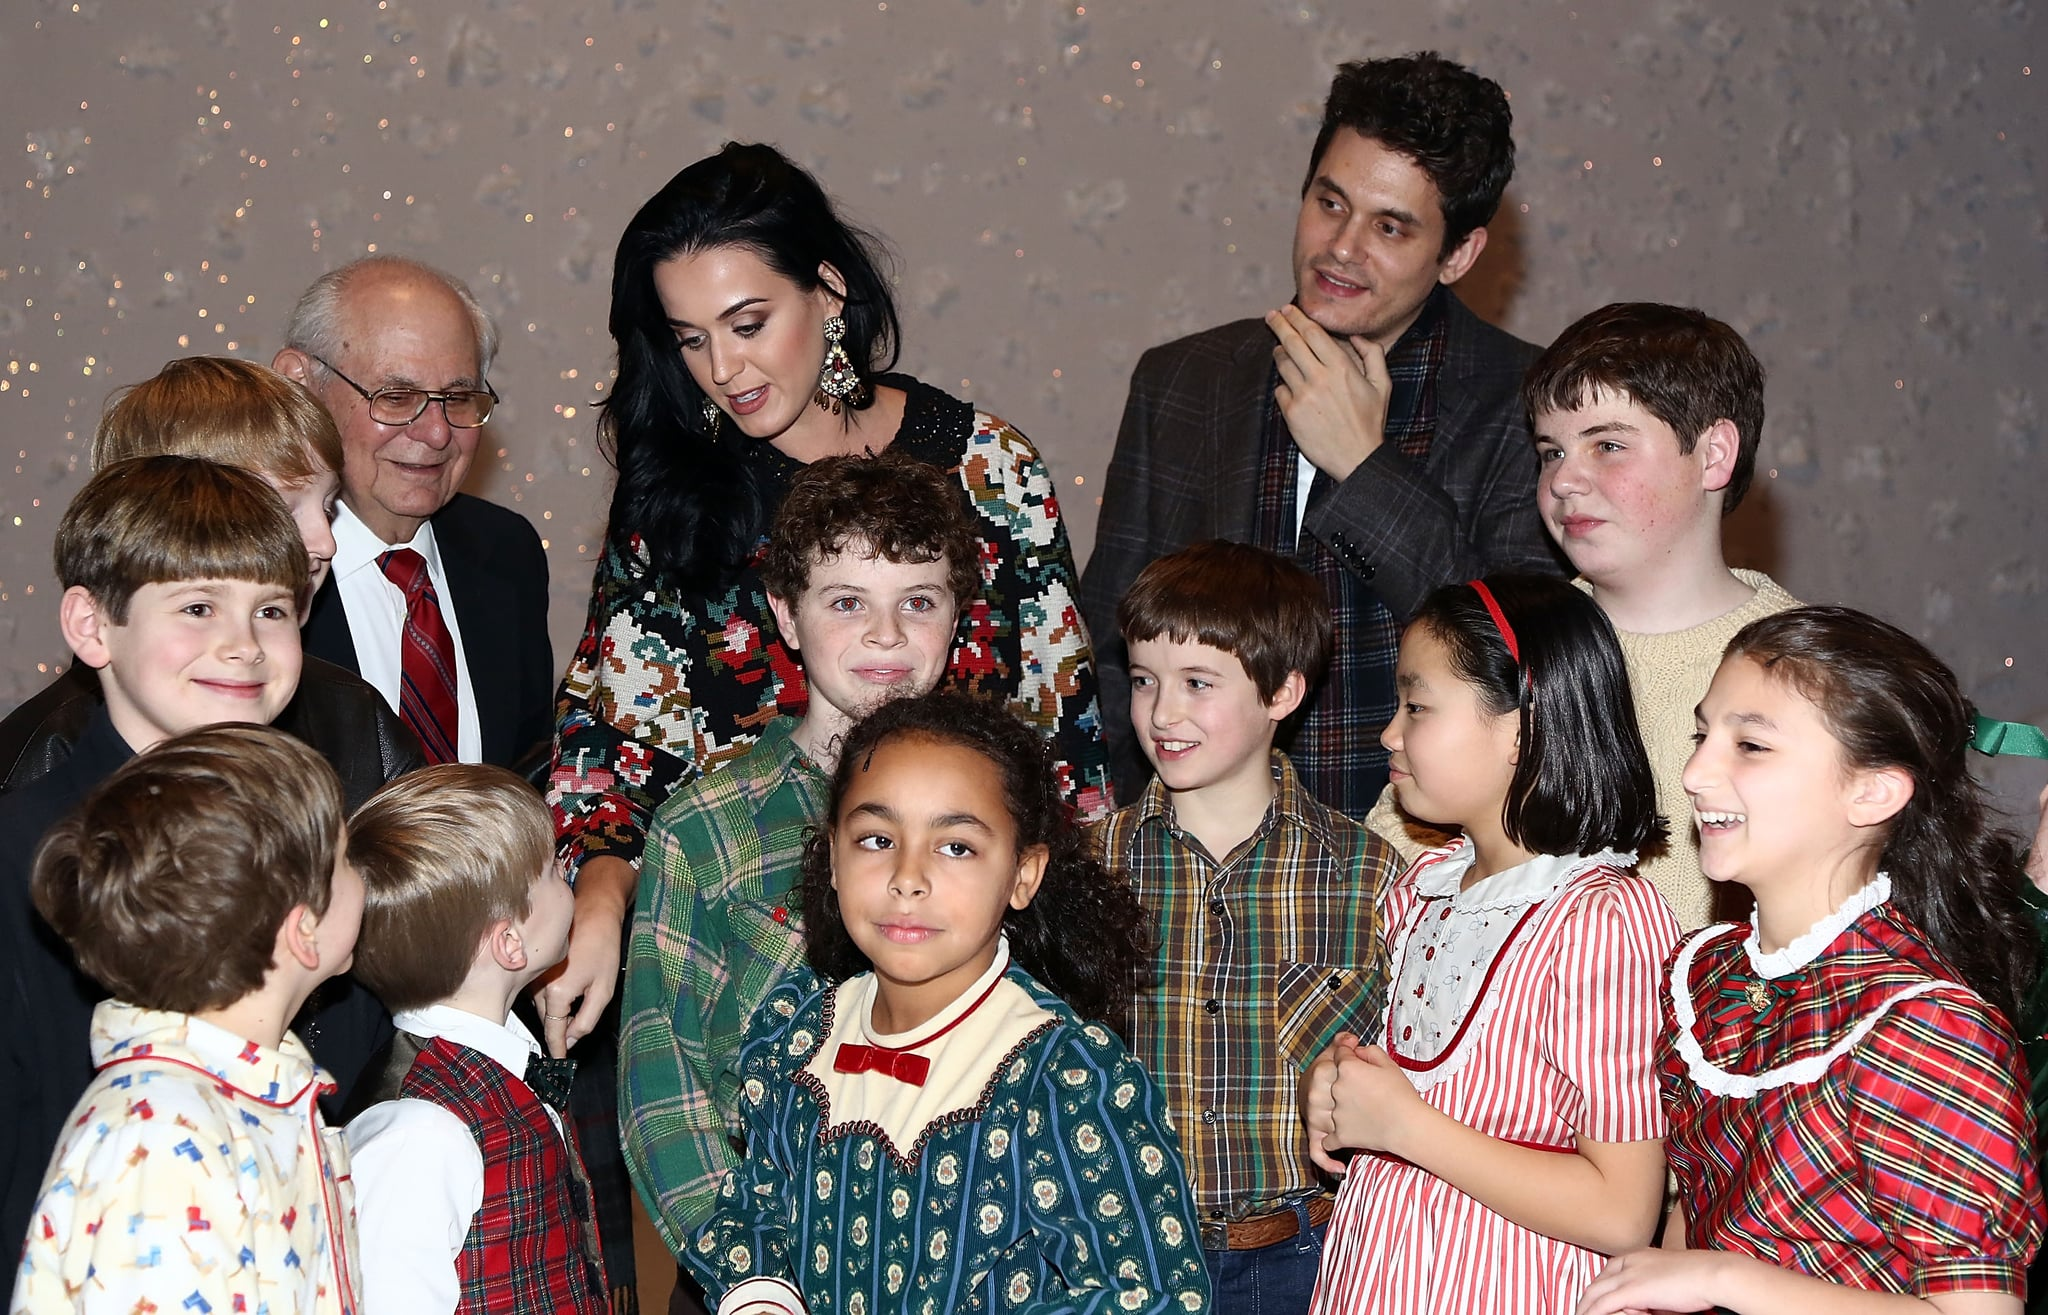 Katy Perry and John Mayer talked with the child stars.